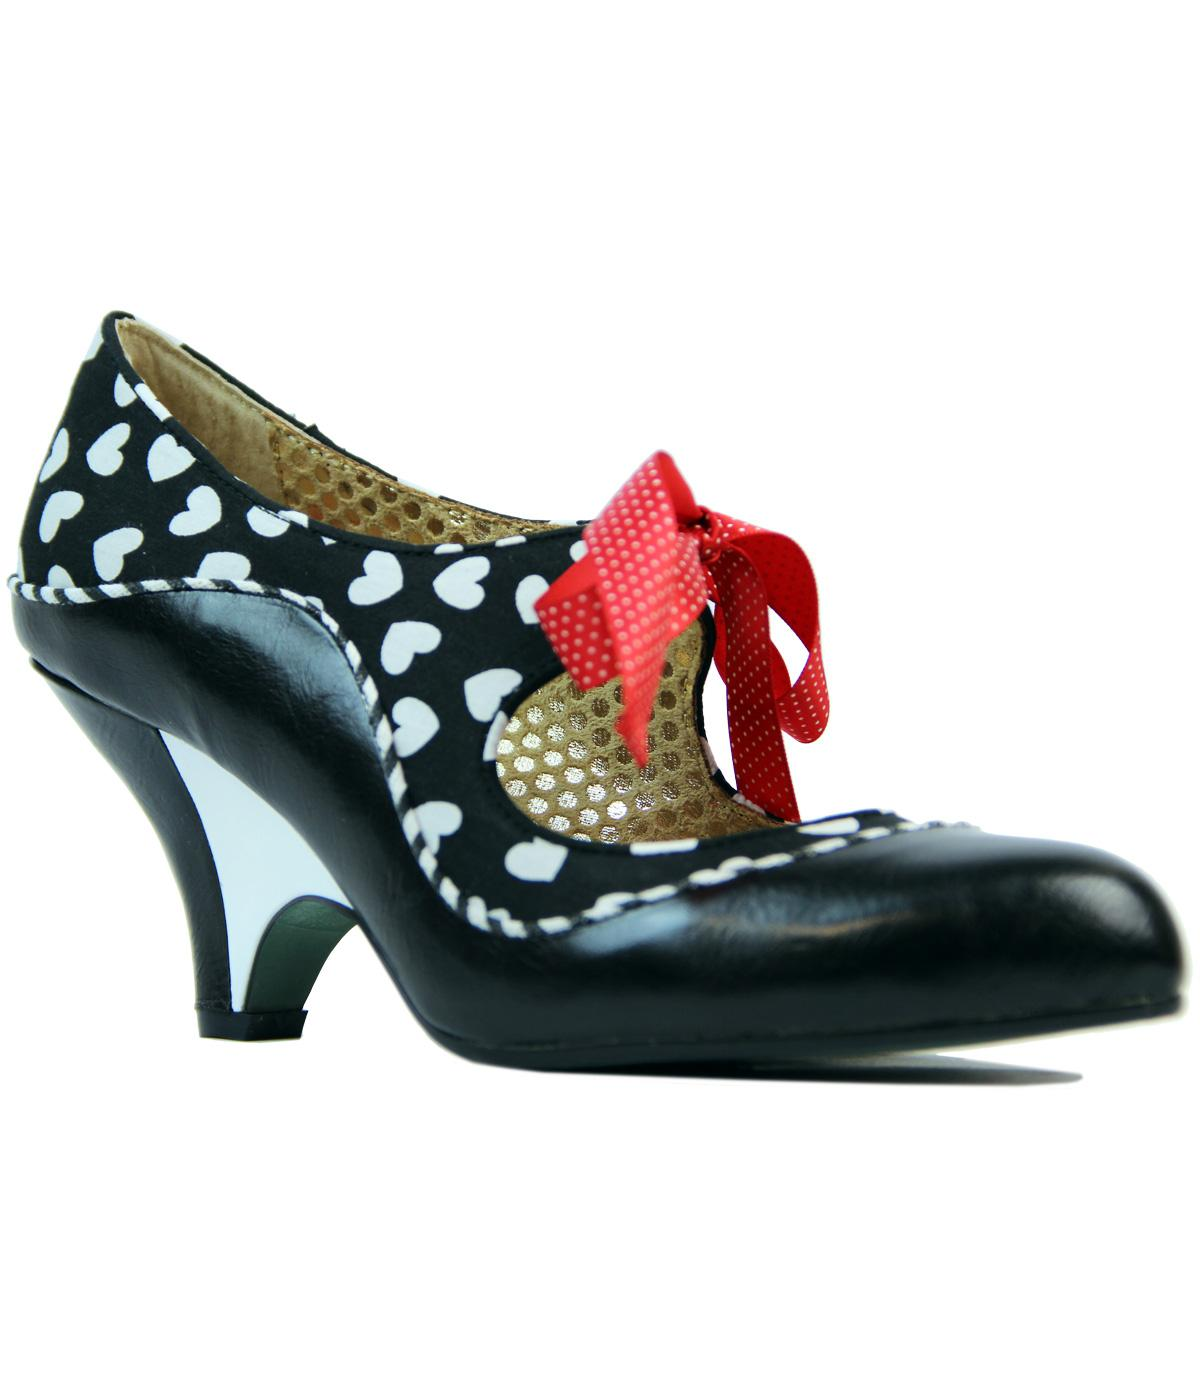 School's Out POETIC LICENCE Retro Love Heart Heels